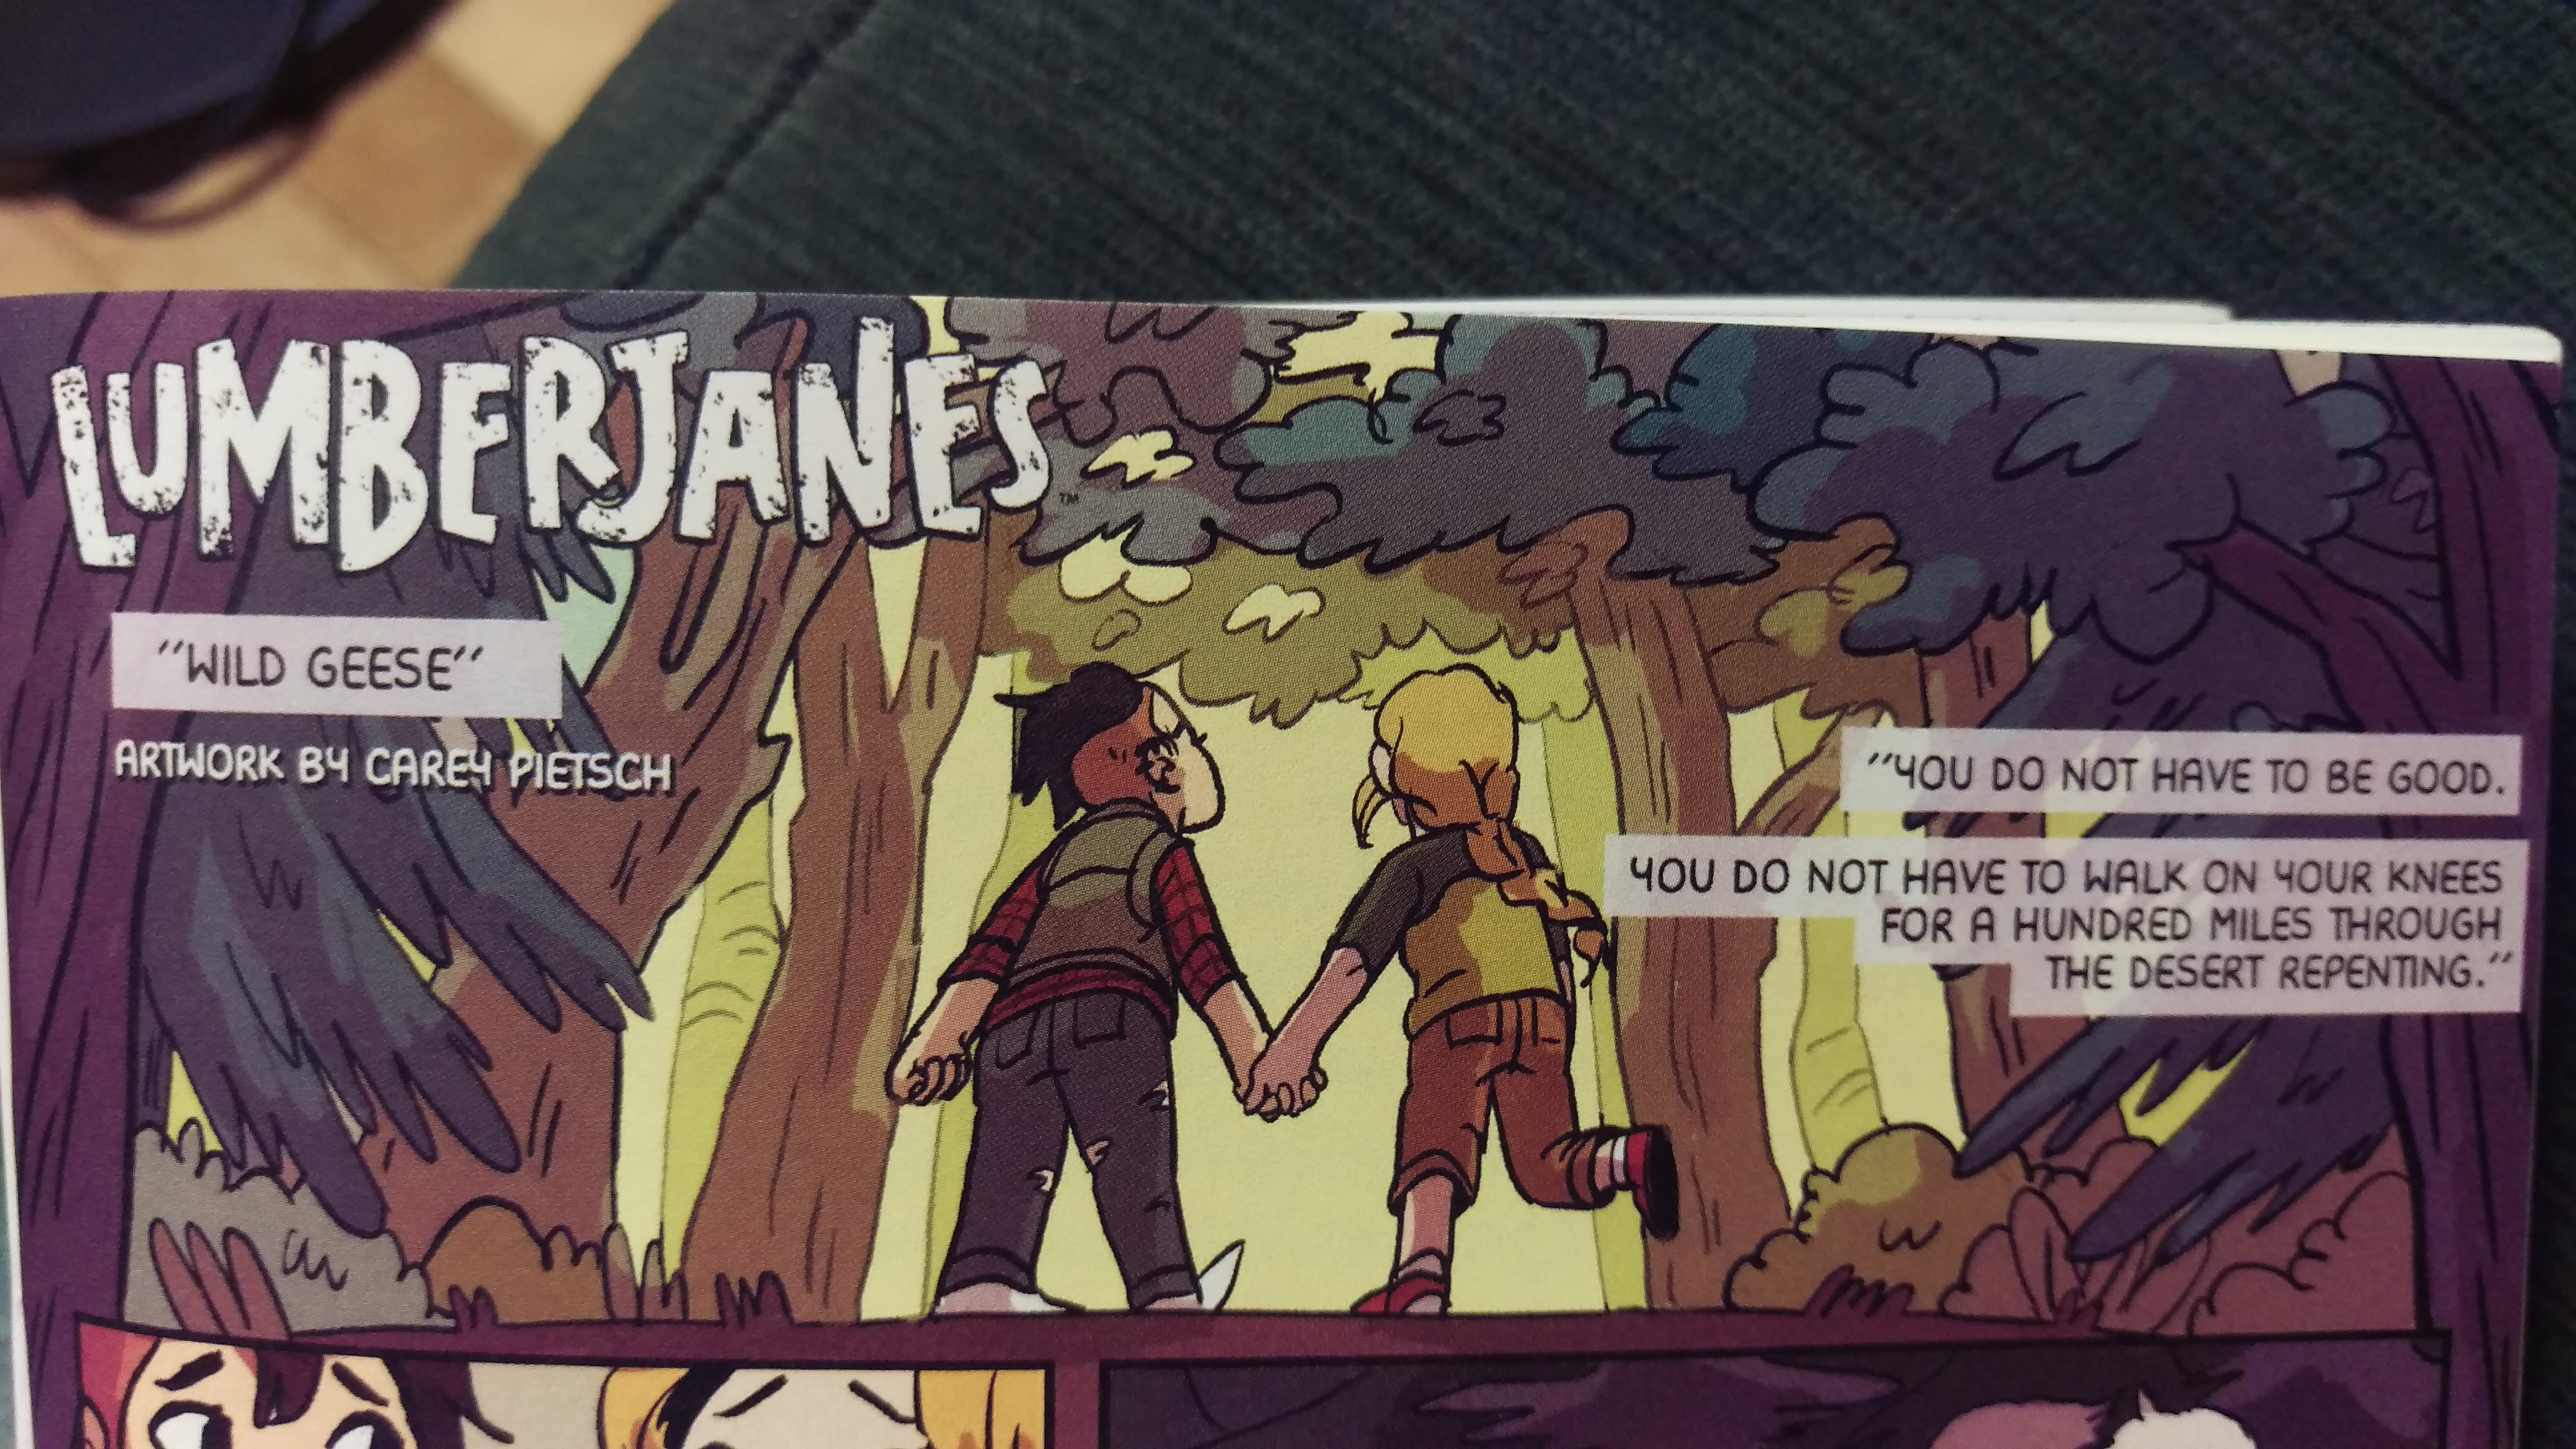 Lumberjanes for Autostraddle Better Together Zine